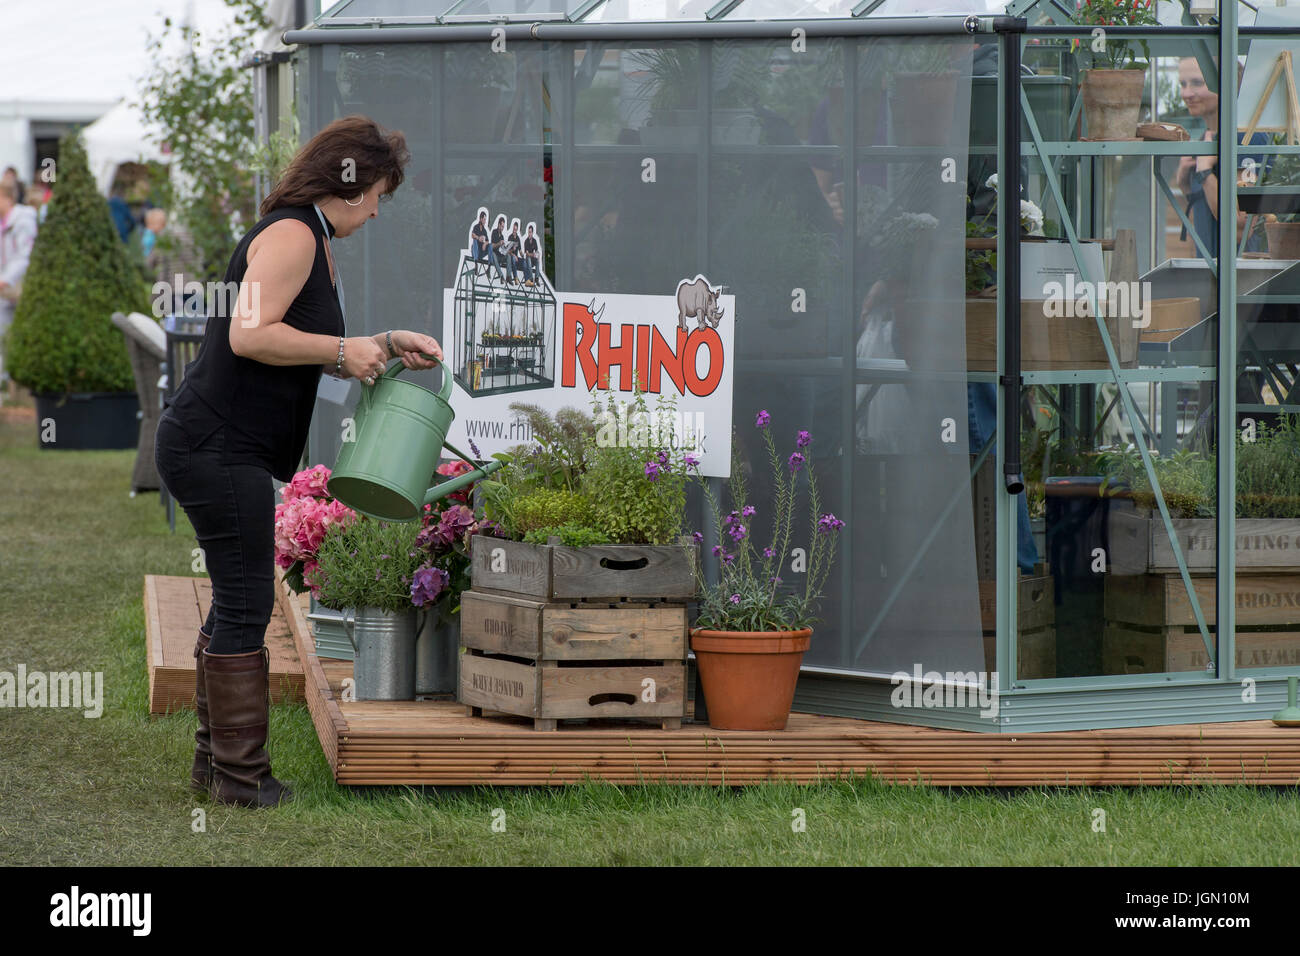 Lady watering plants by greenhouse on display & for sale at Rhino tradestand - RHS Chatsworth Flower Show, Chatsworth - Stock Image